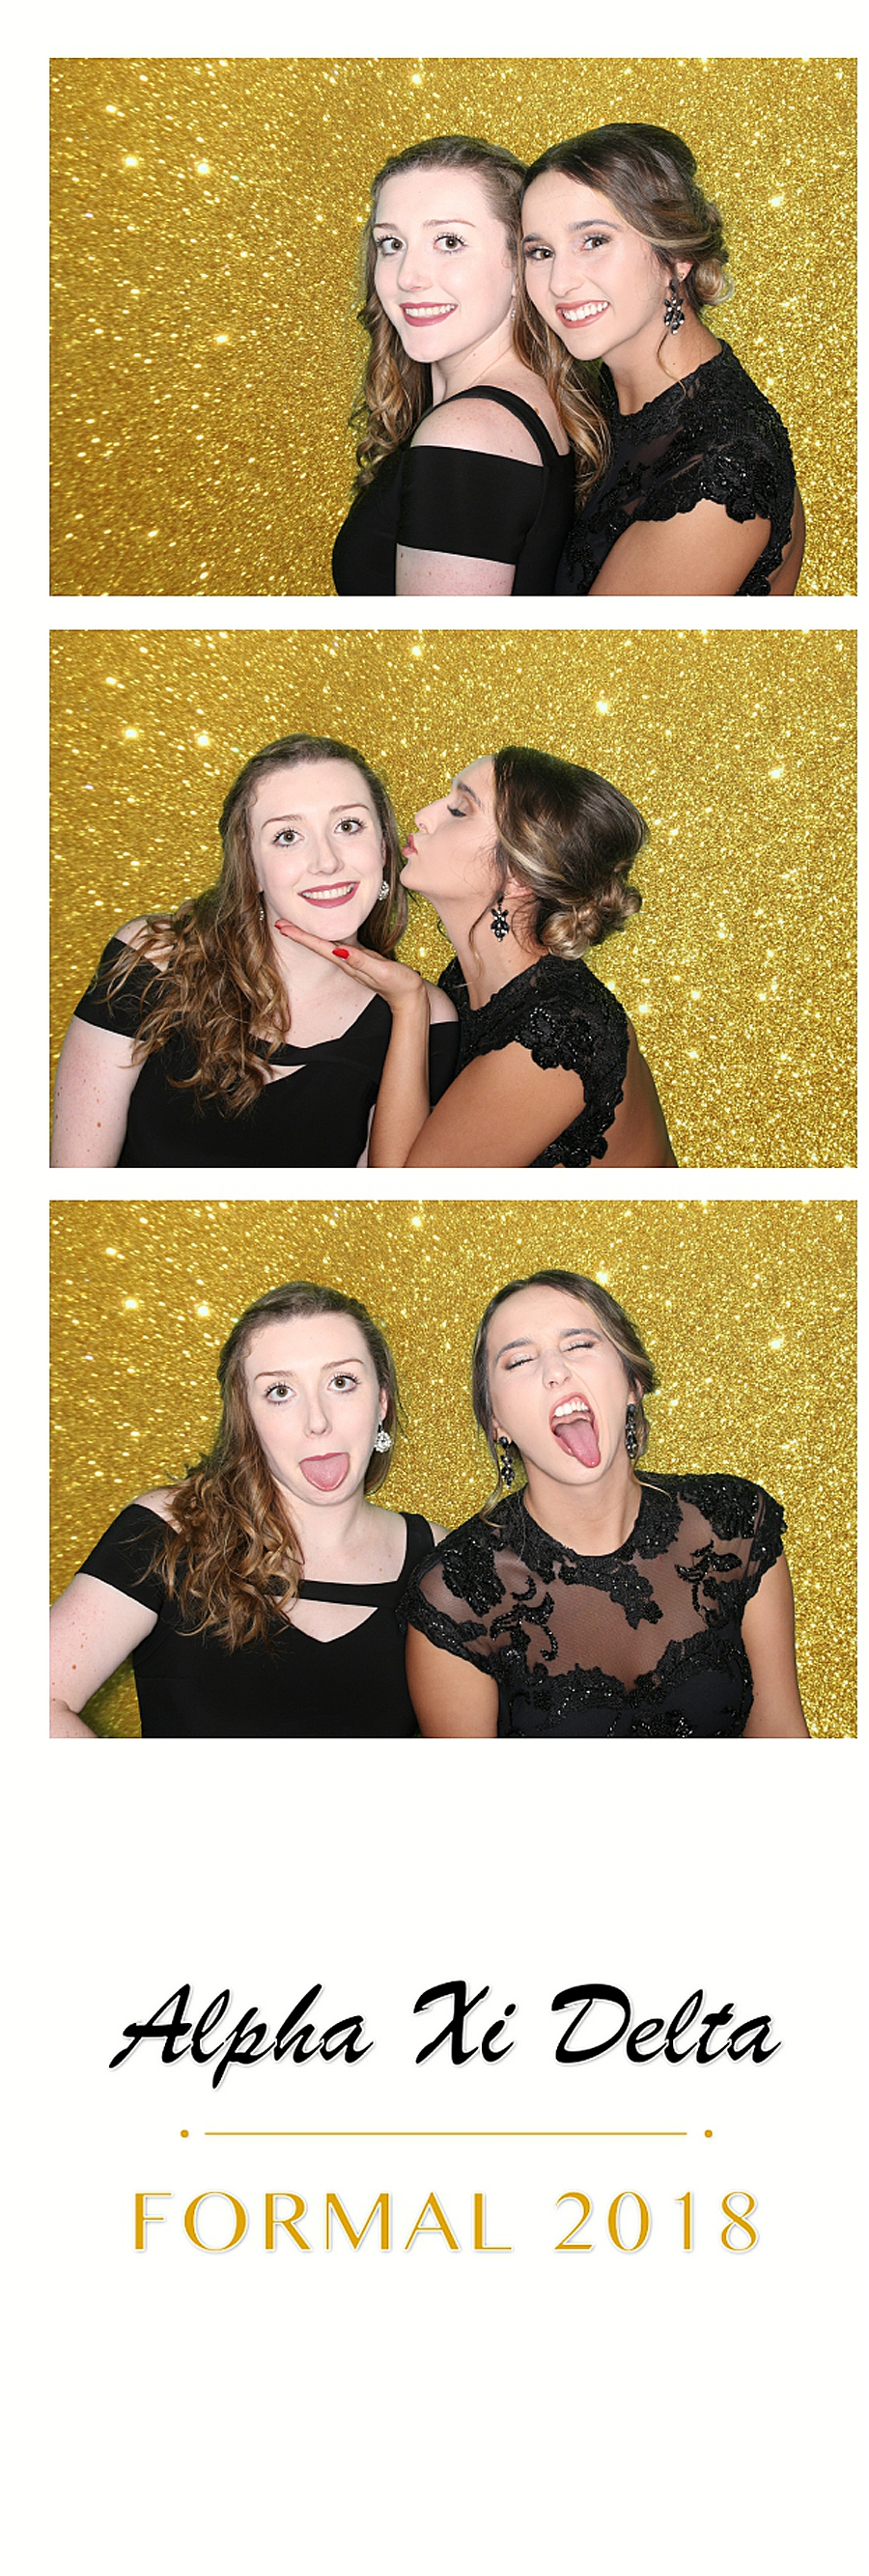 Knoxville Photo Booth_1599.jpg